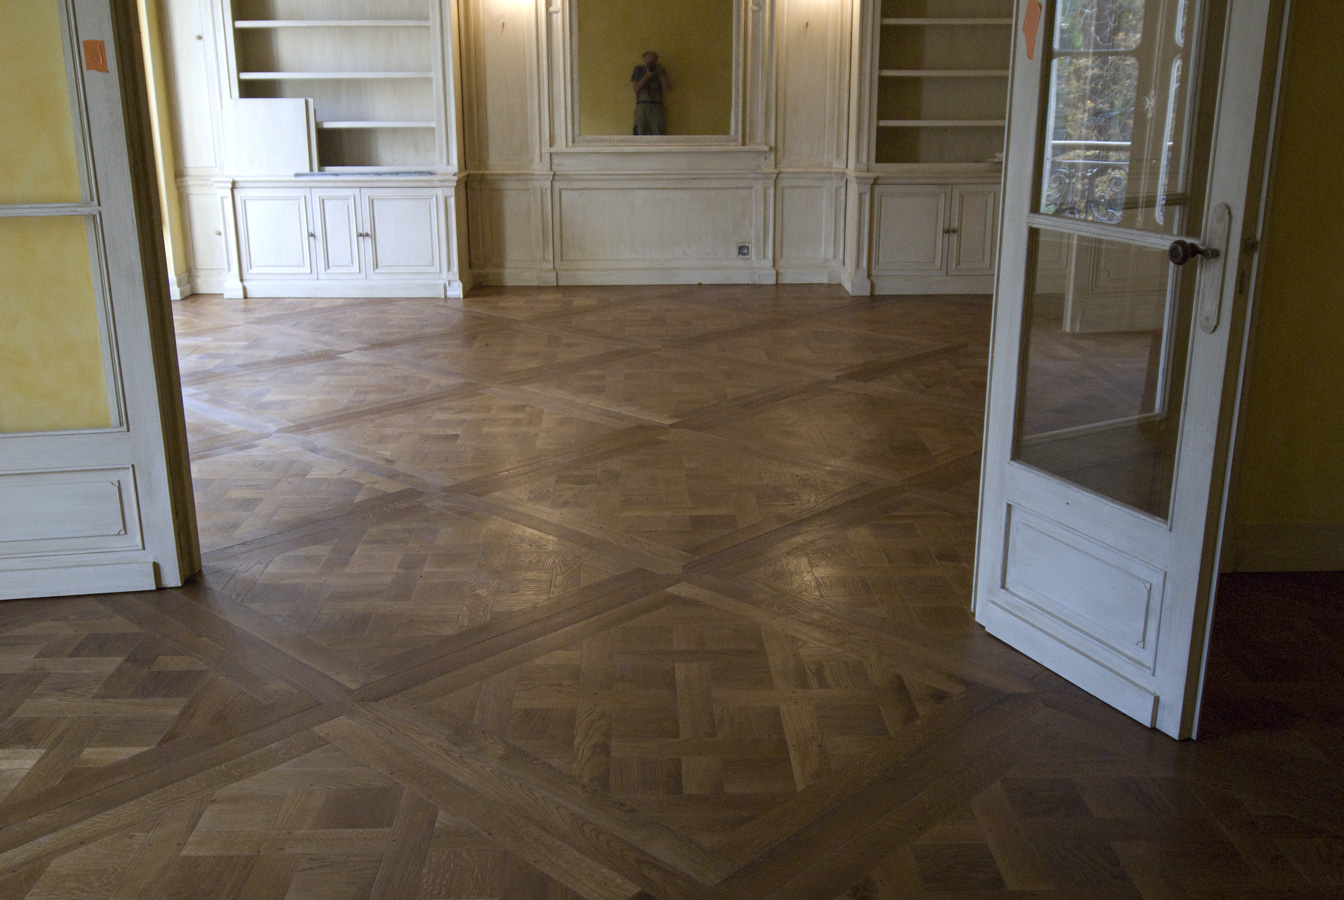 etat des lieux apr s parquet panneaux versailles et parquet foug re bordeaux n 863. Black Bedroom Furniture Sets. Home Design Ideas